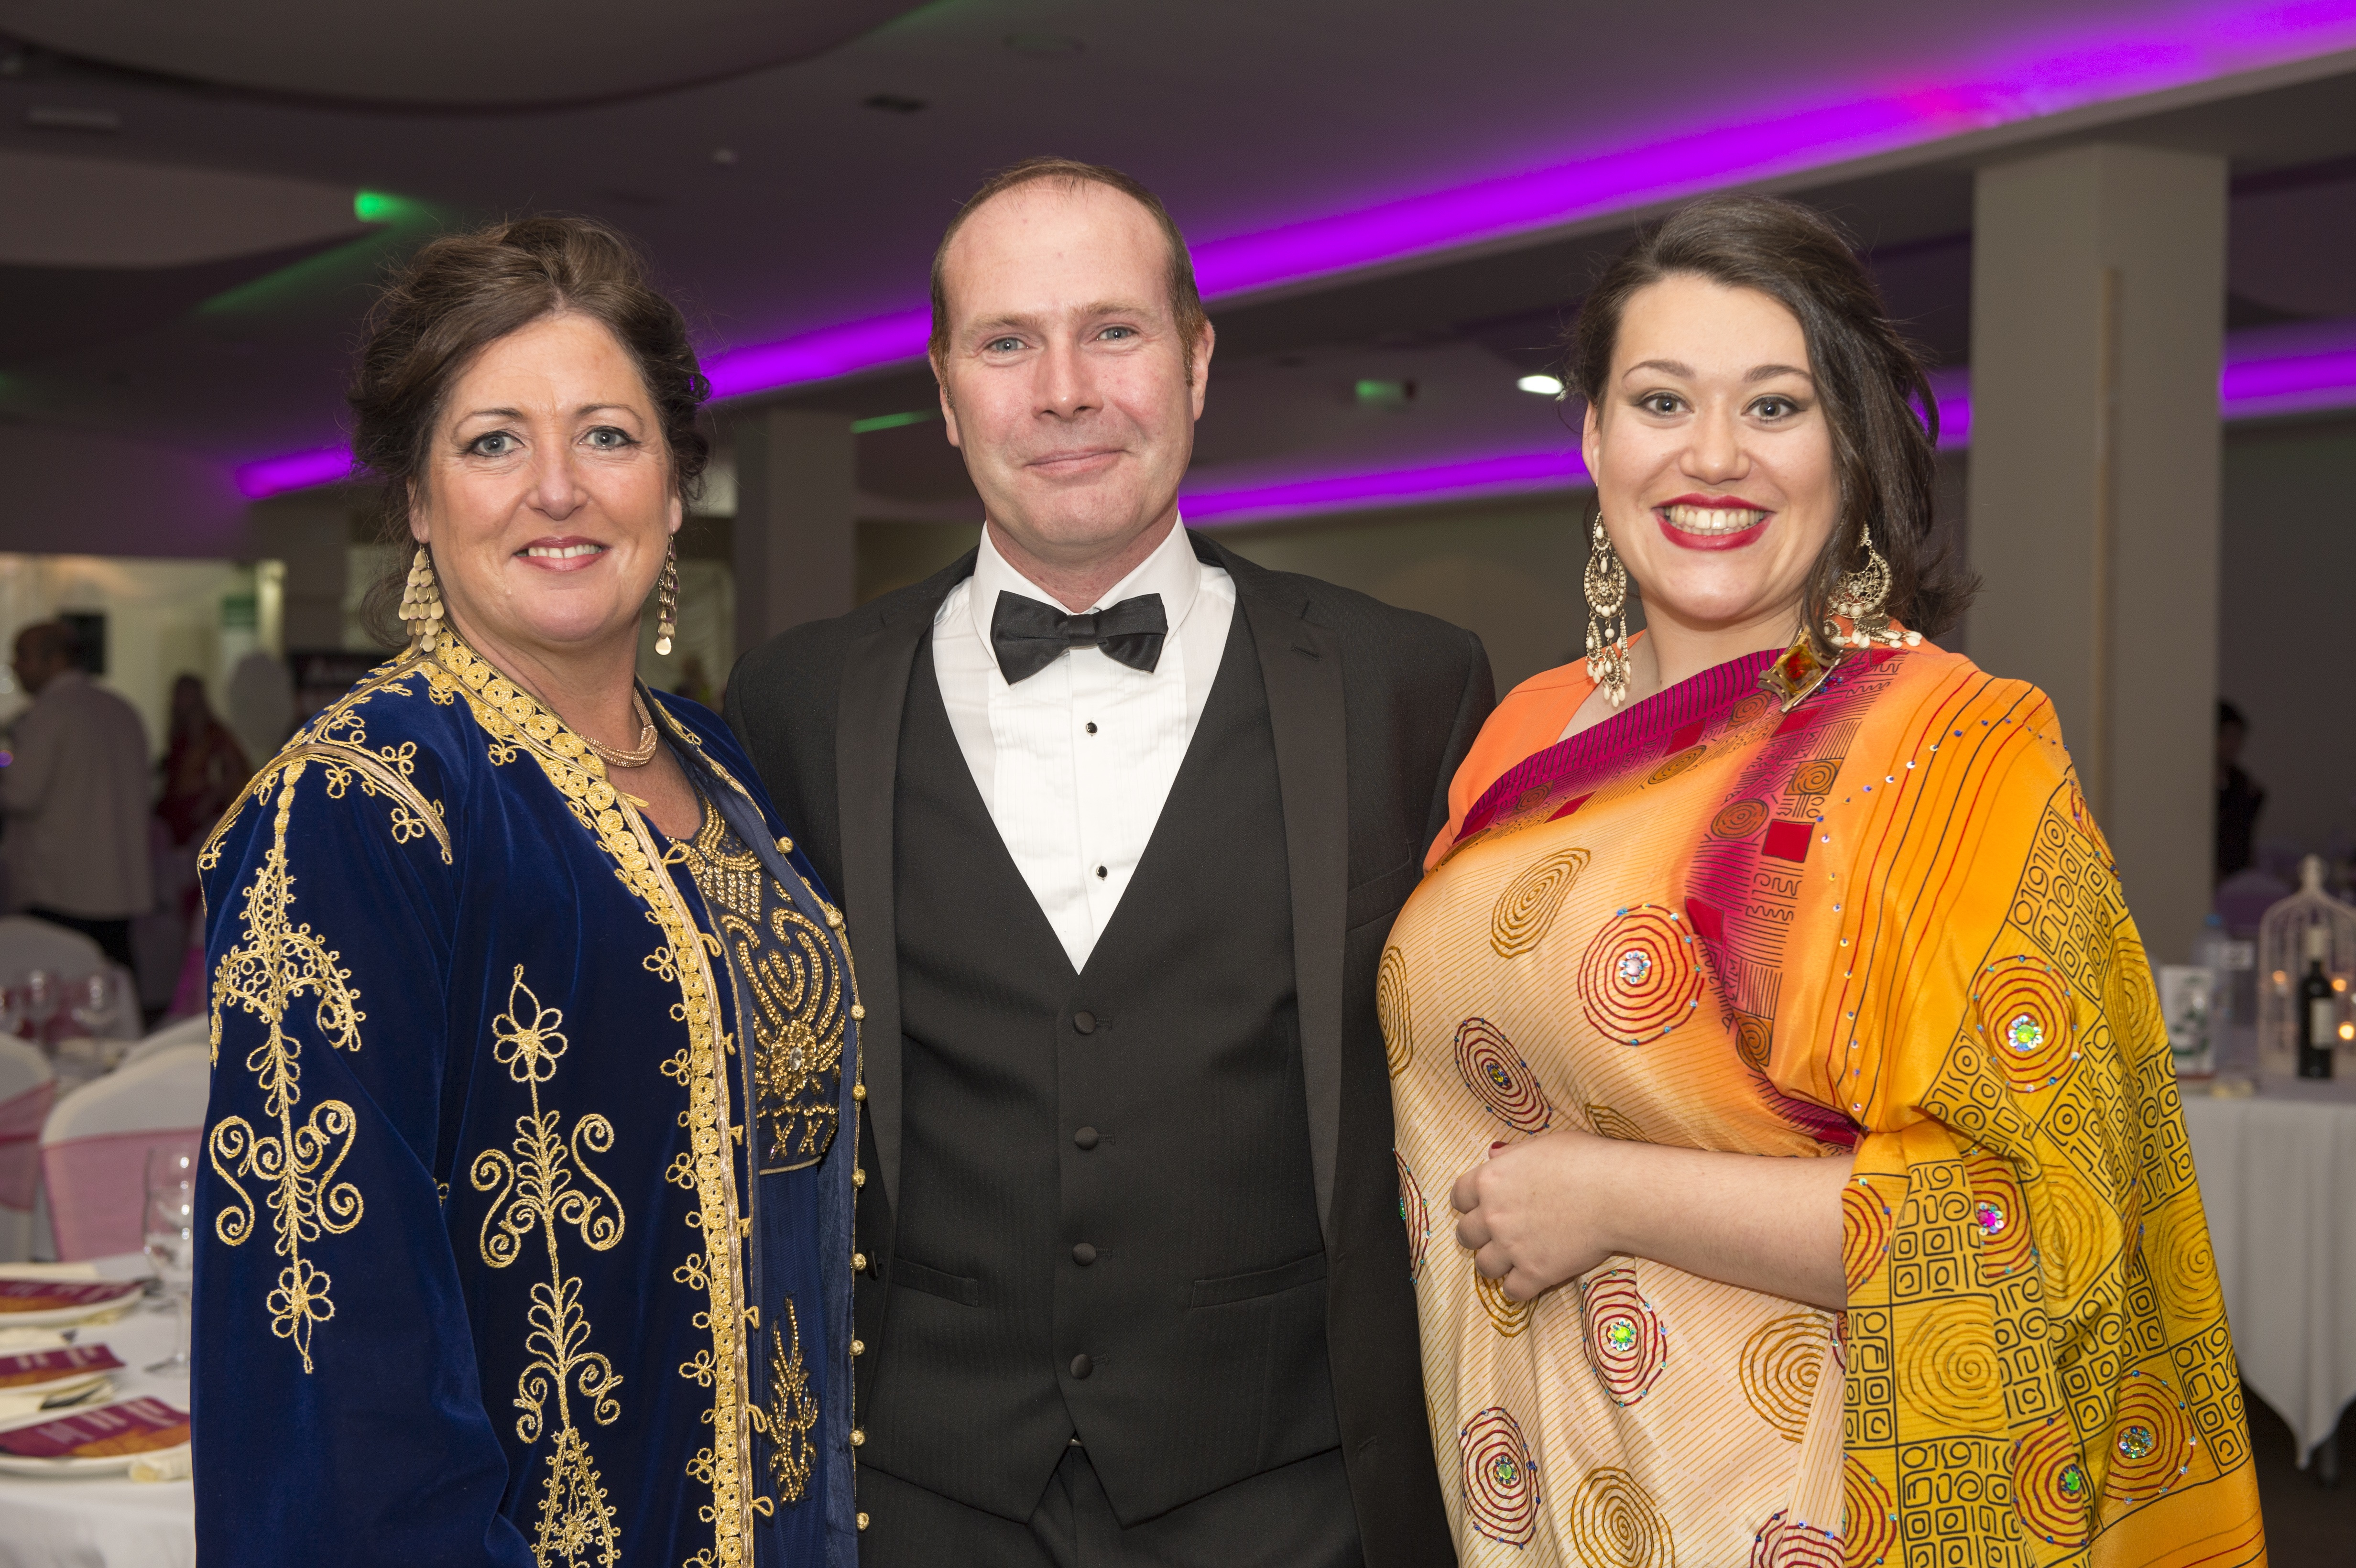 Bhayani Law Bollywood Ball held at Arooj, Attercliffe Road in Sheffield Saturday 7th November 2015 Lynn Harrison, Lady Muck Gardening, Mark Thorpe, manufacturing engineer, Kate Harrison, student